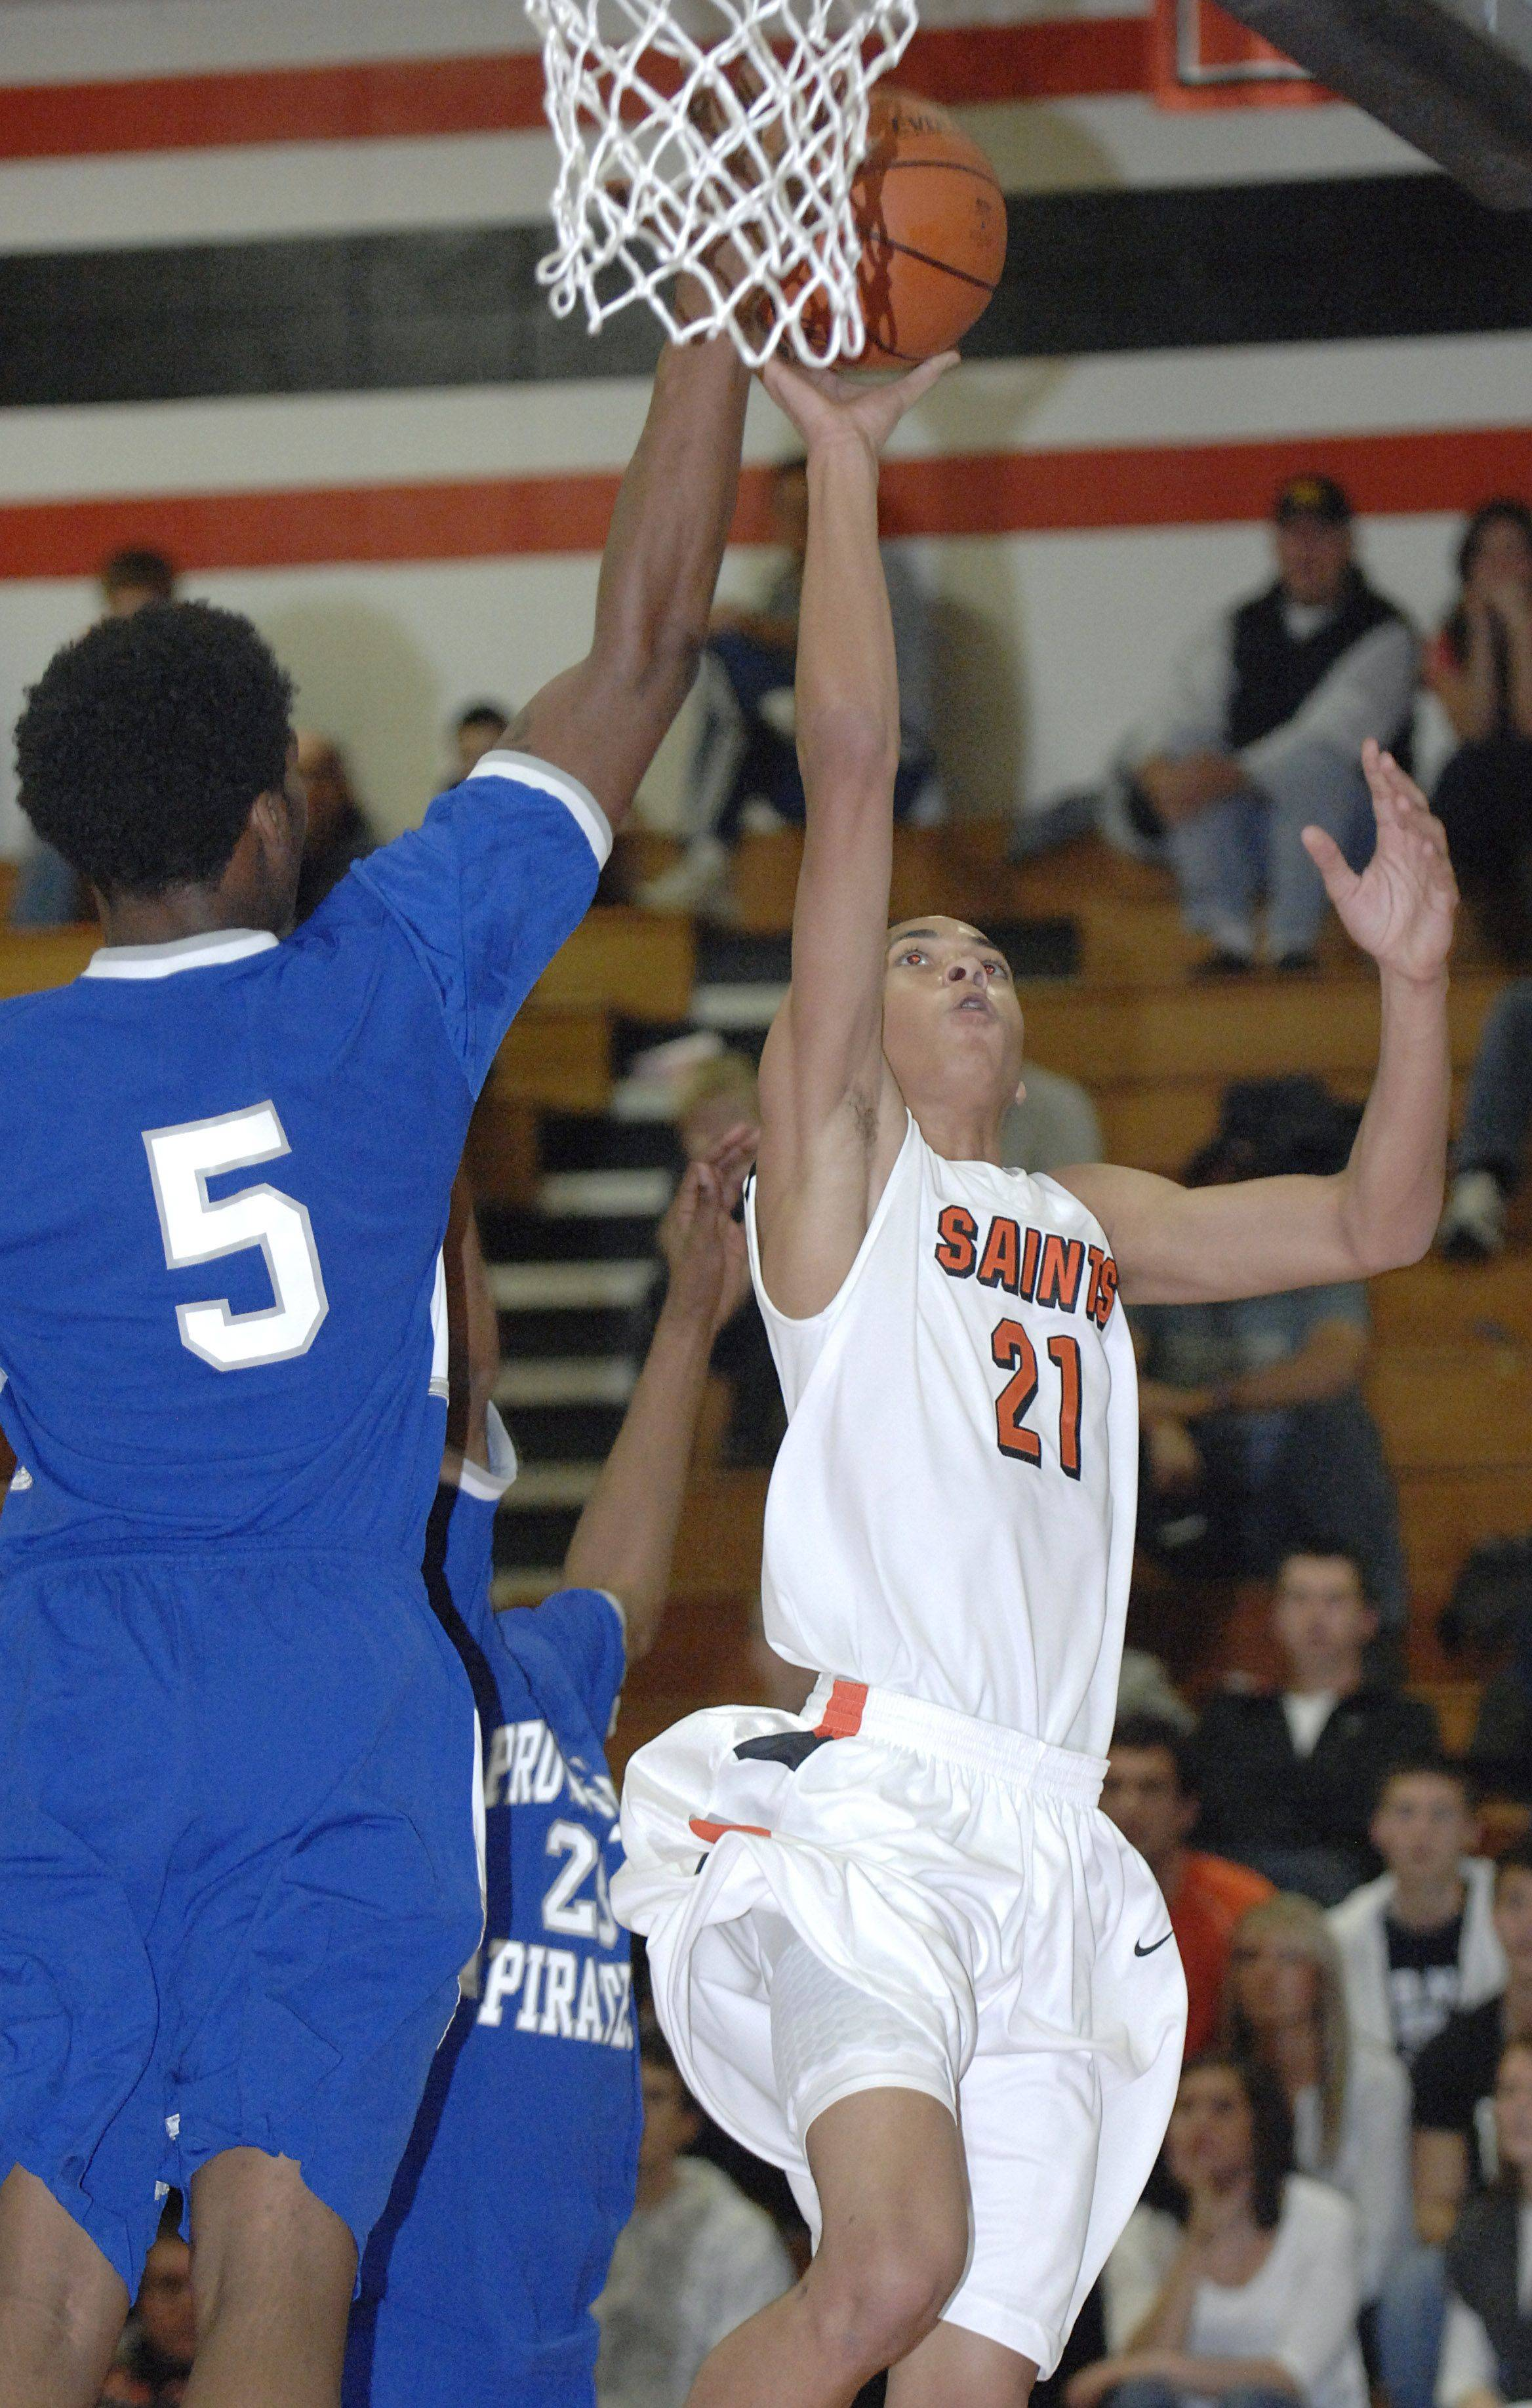 St. Charles East's Kendall Stephens sinks a shot past Proviso East's Trashaun Carroll in the first quarter of tournament game on Tuesday, November 22.